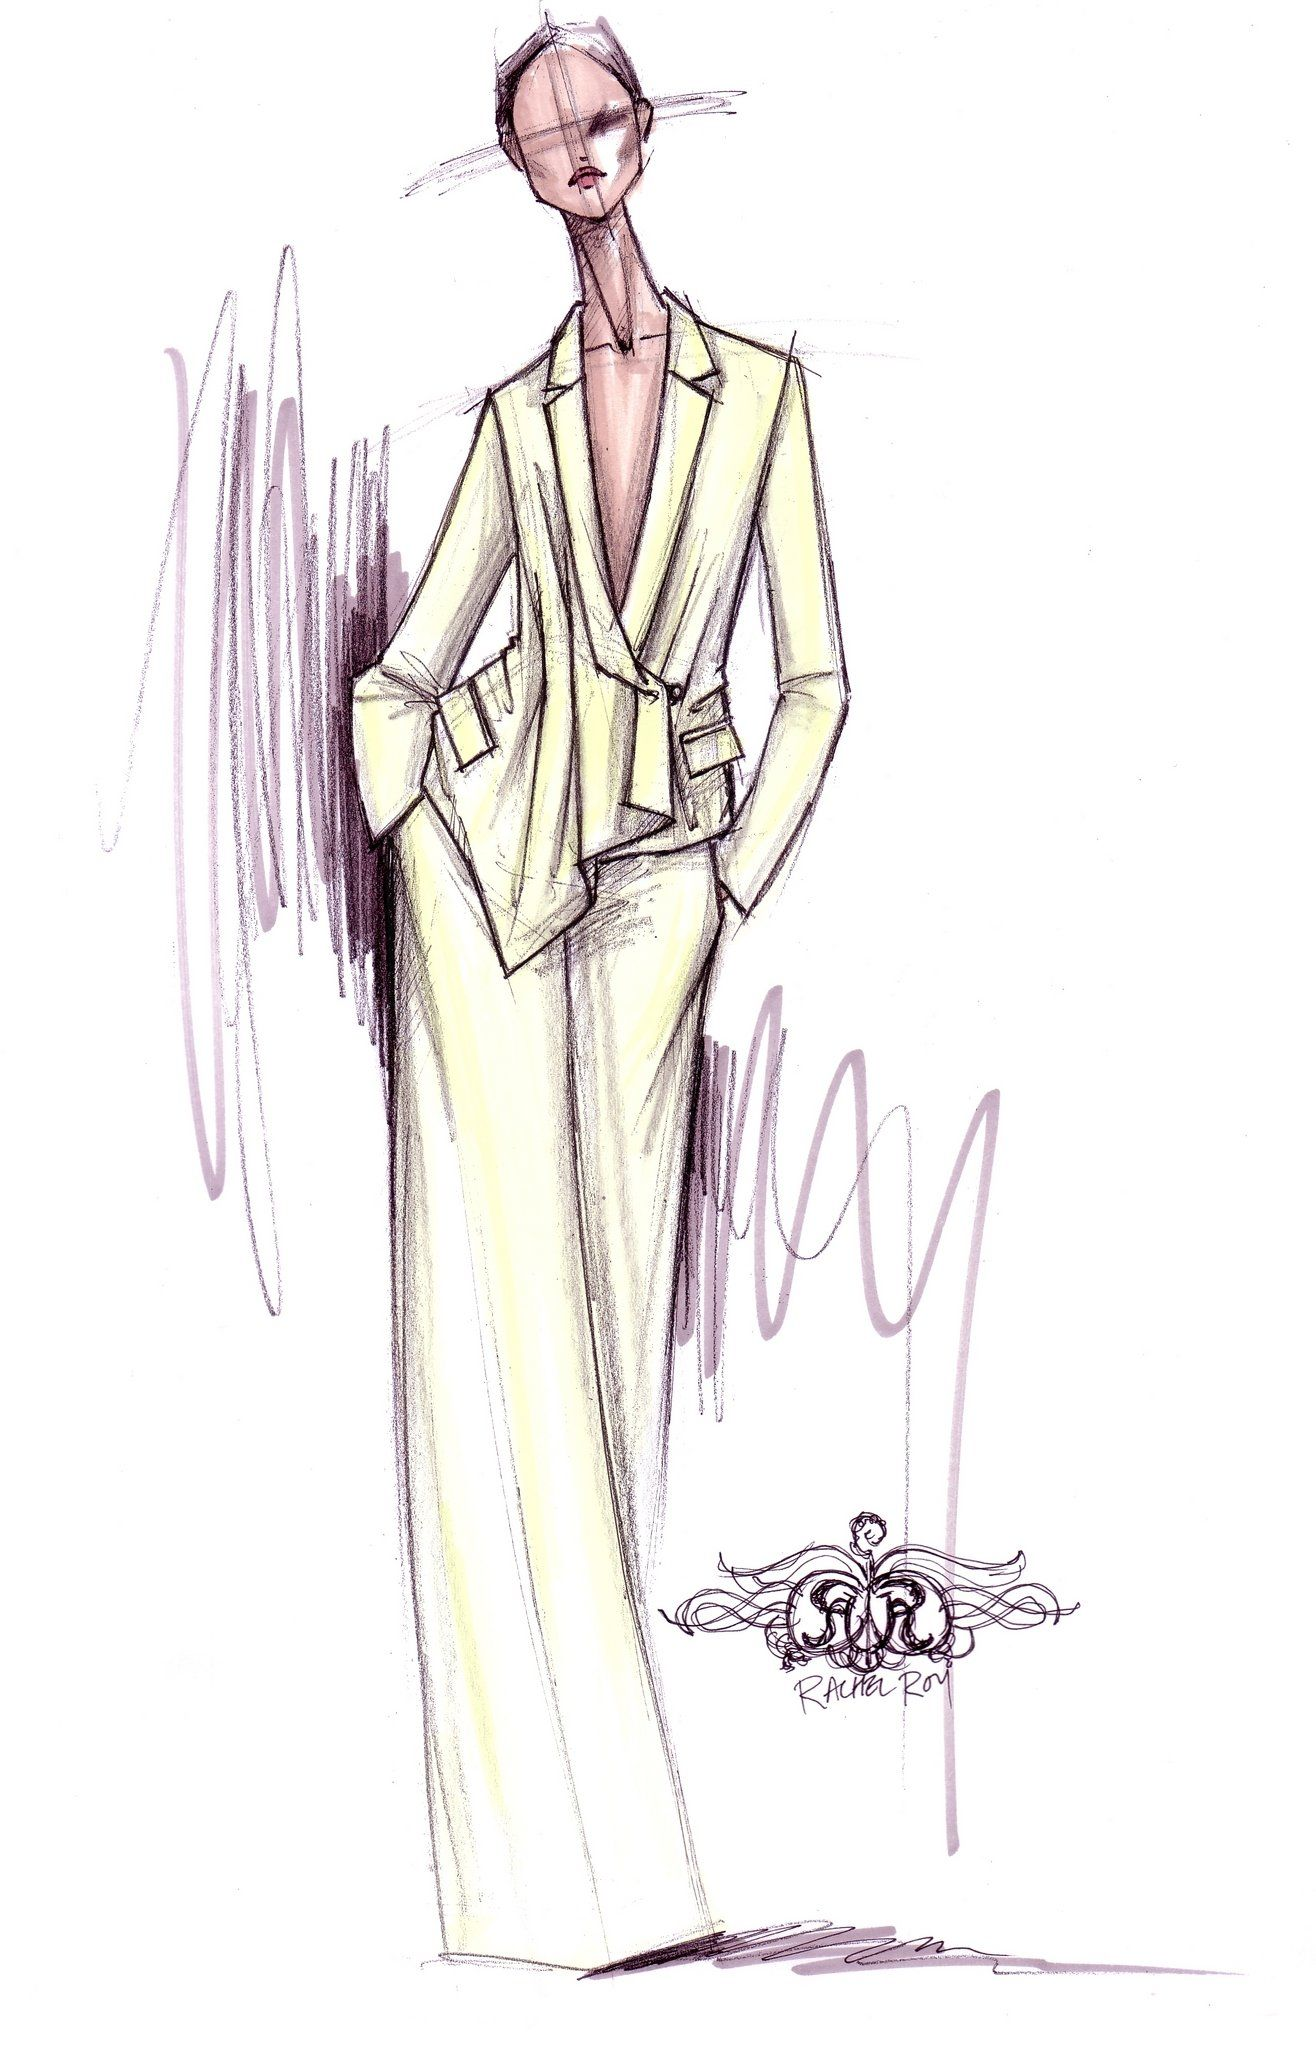 Fashion sketches new fashion sketches - Sketch From The Rachel Roy Spring 2012 Collection To Be Shown During New York Fashion Week